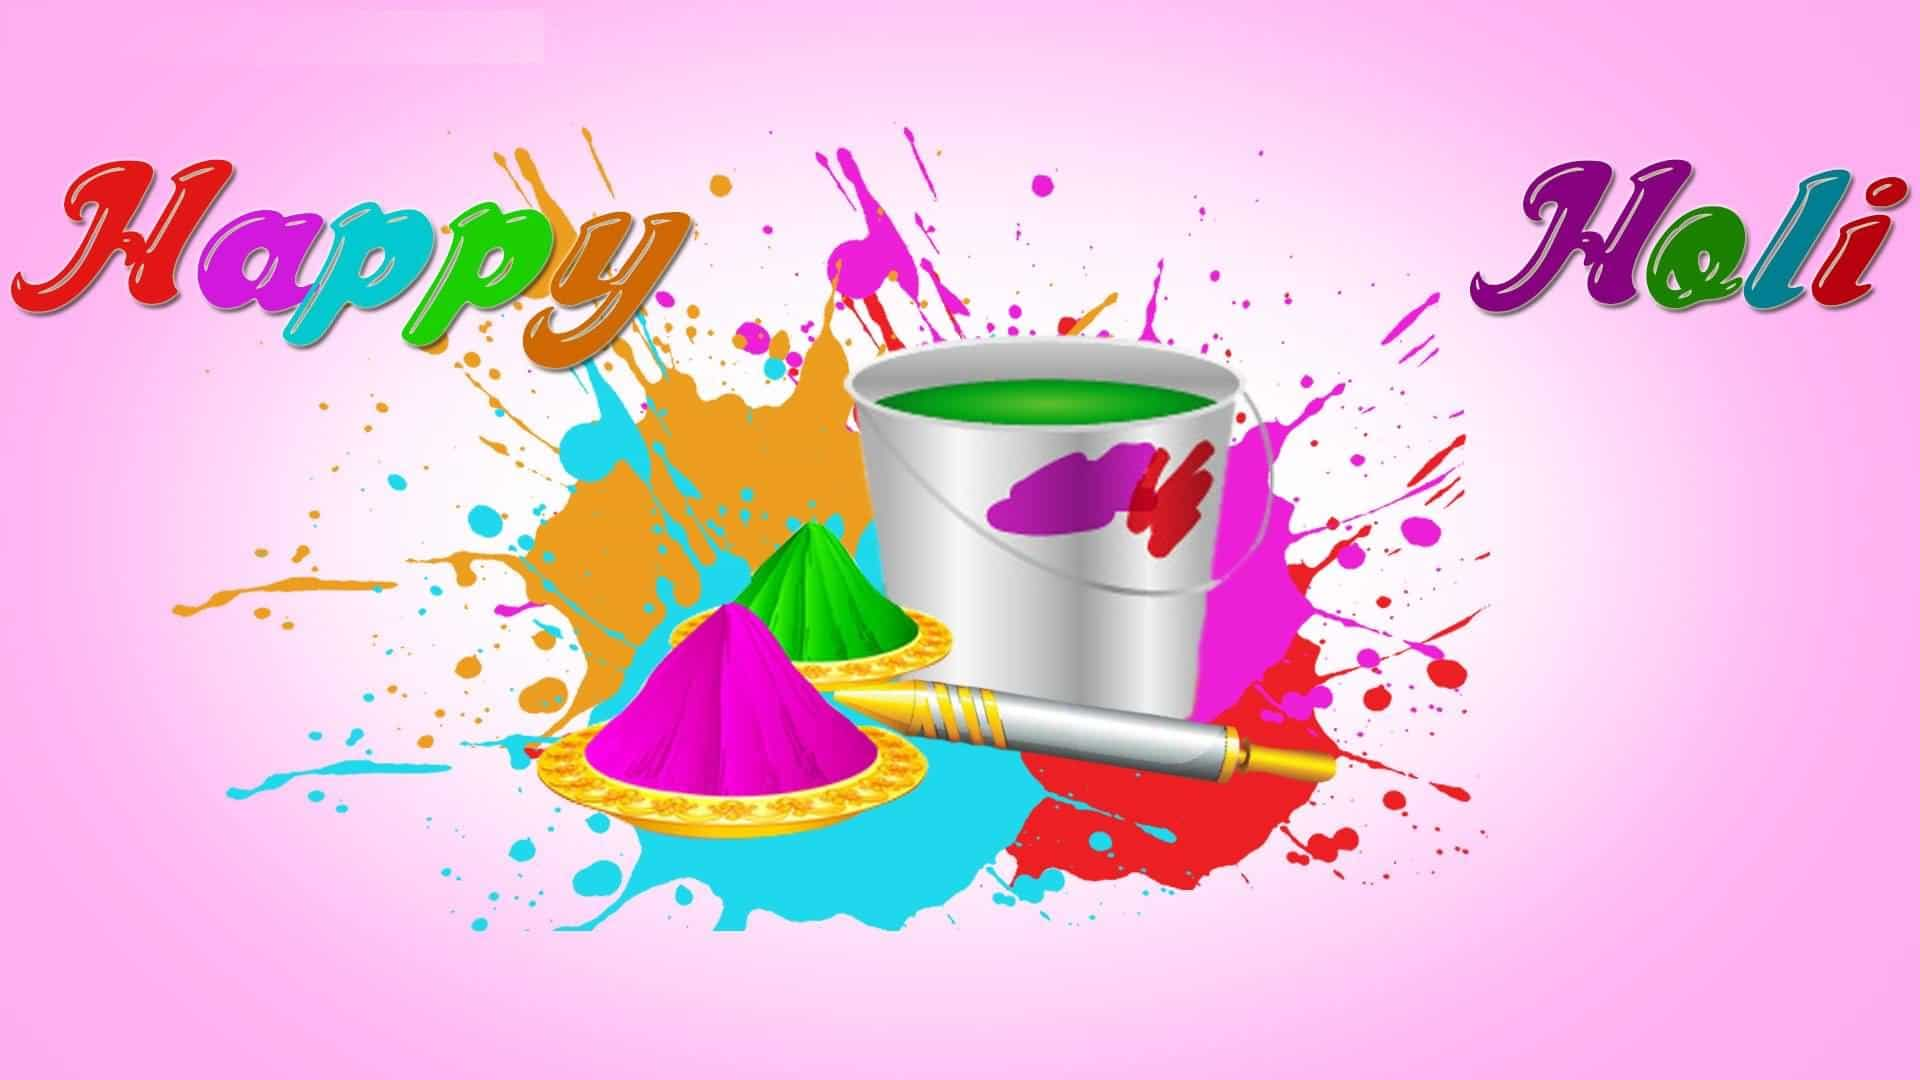 Happy Holi 2018 Photos